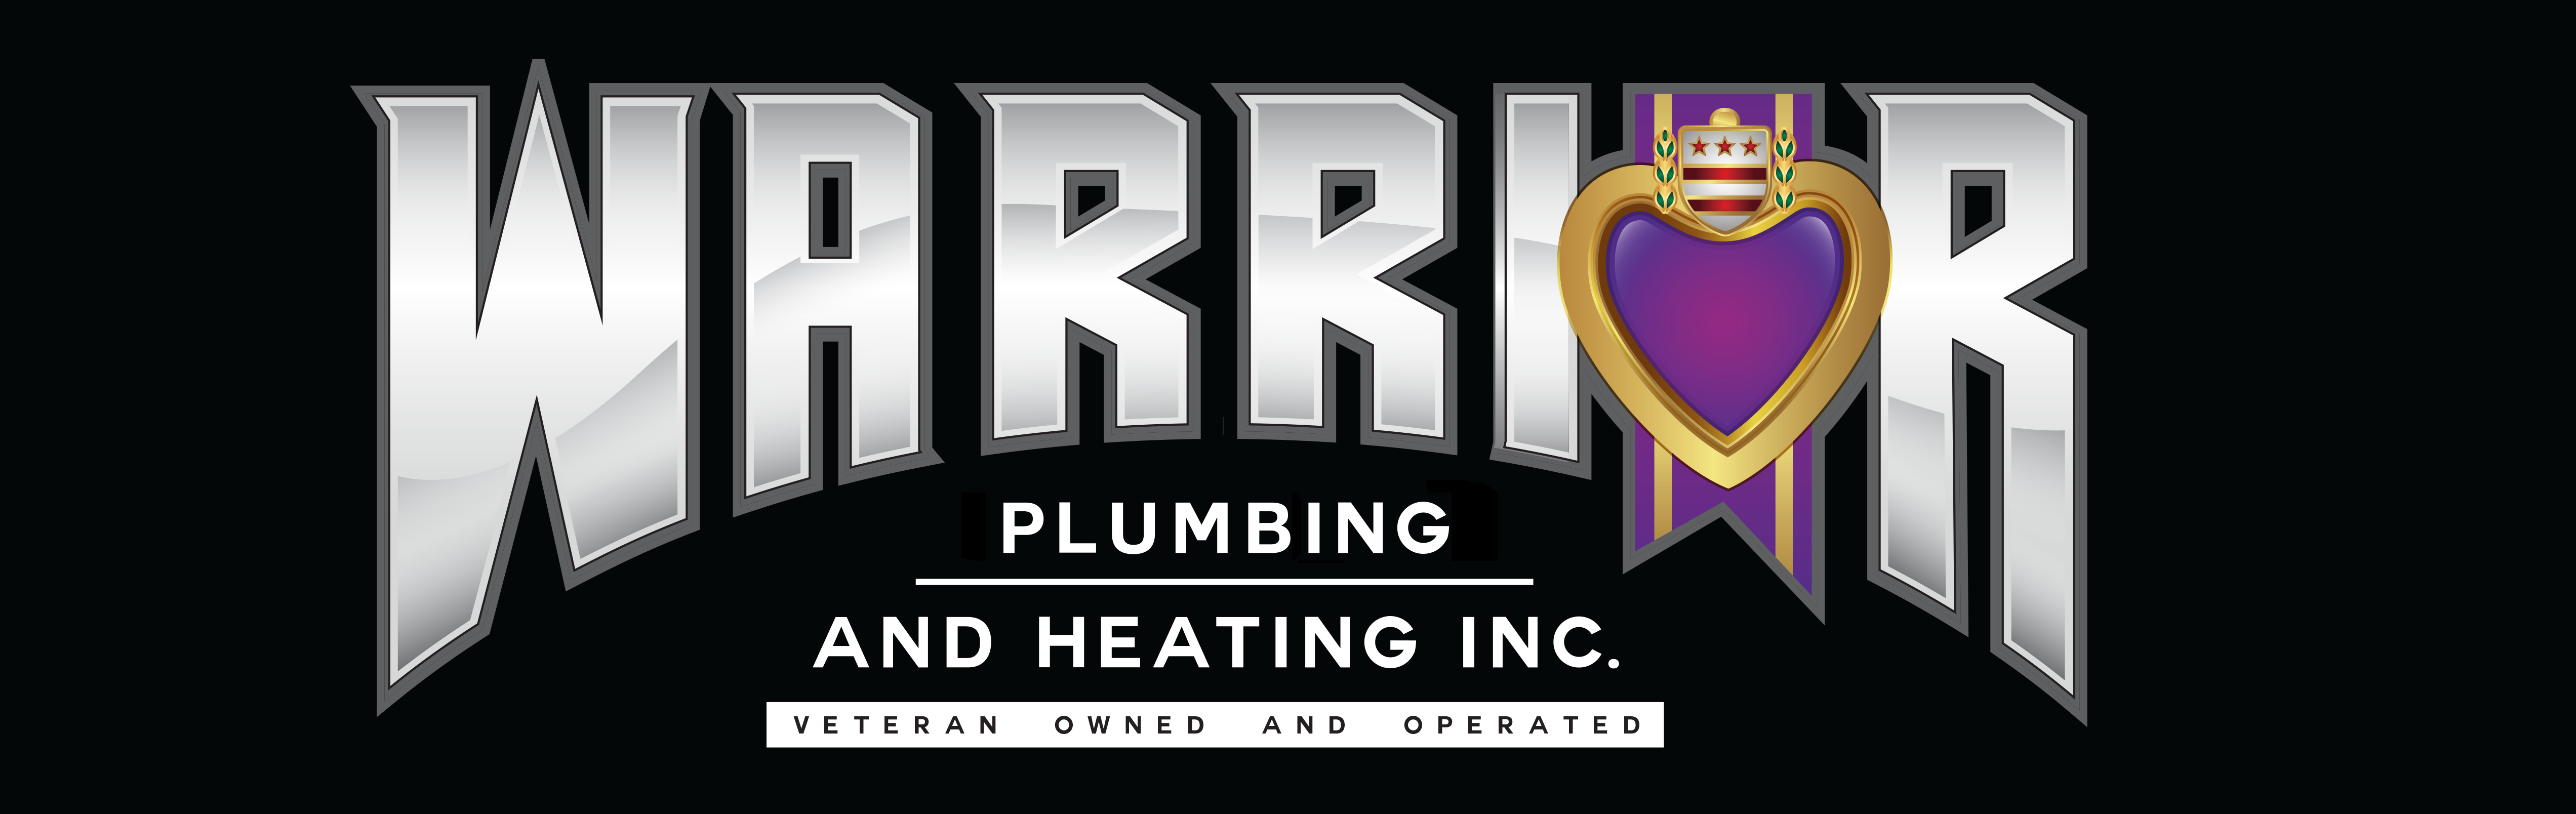 Warrior Plumbing & Heating